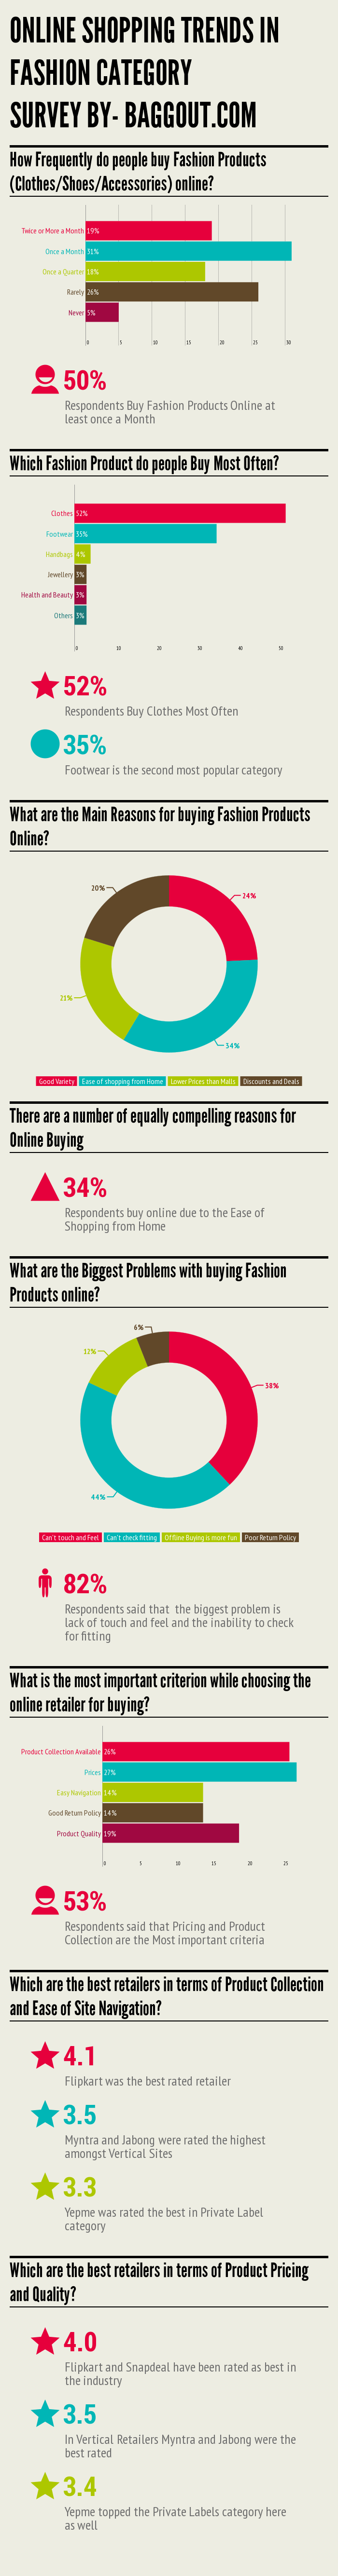 Fashion Category Trends Infographic